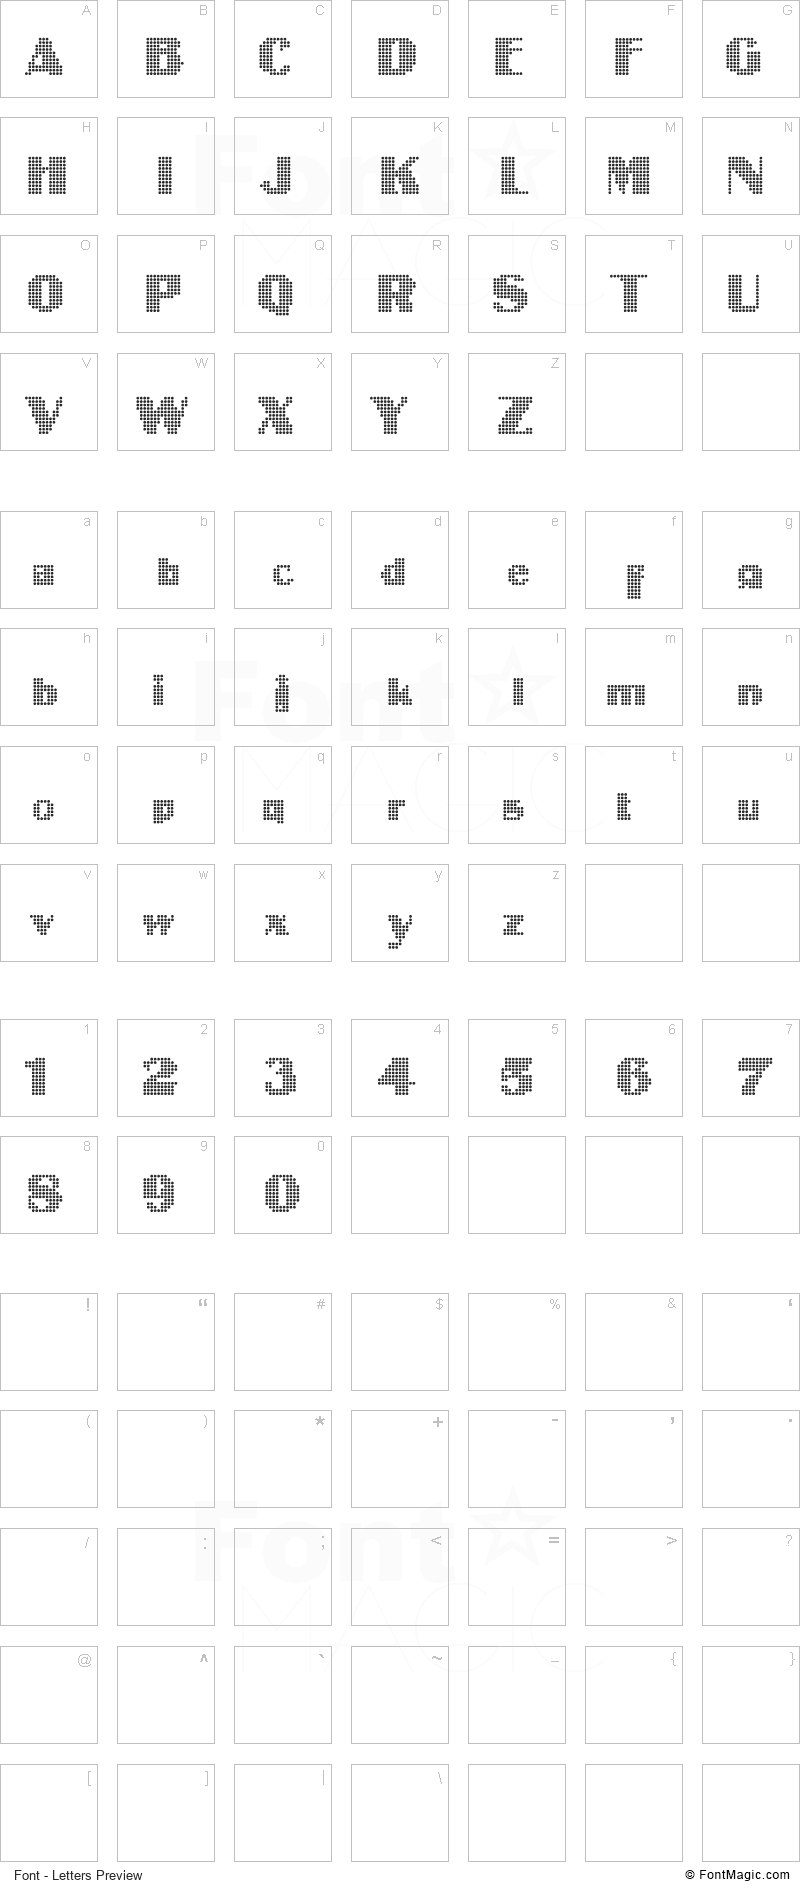 Intellecta Digital Font - All Latters Preview Chart